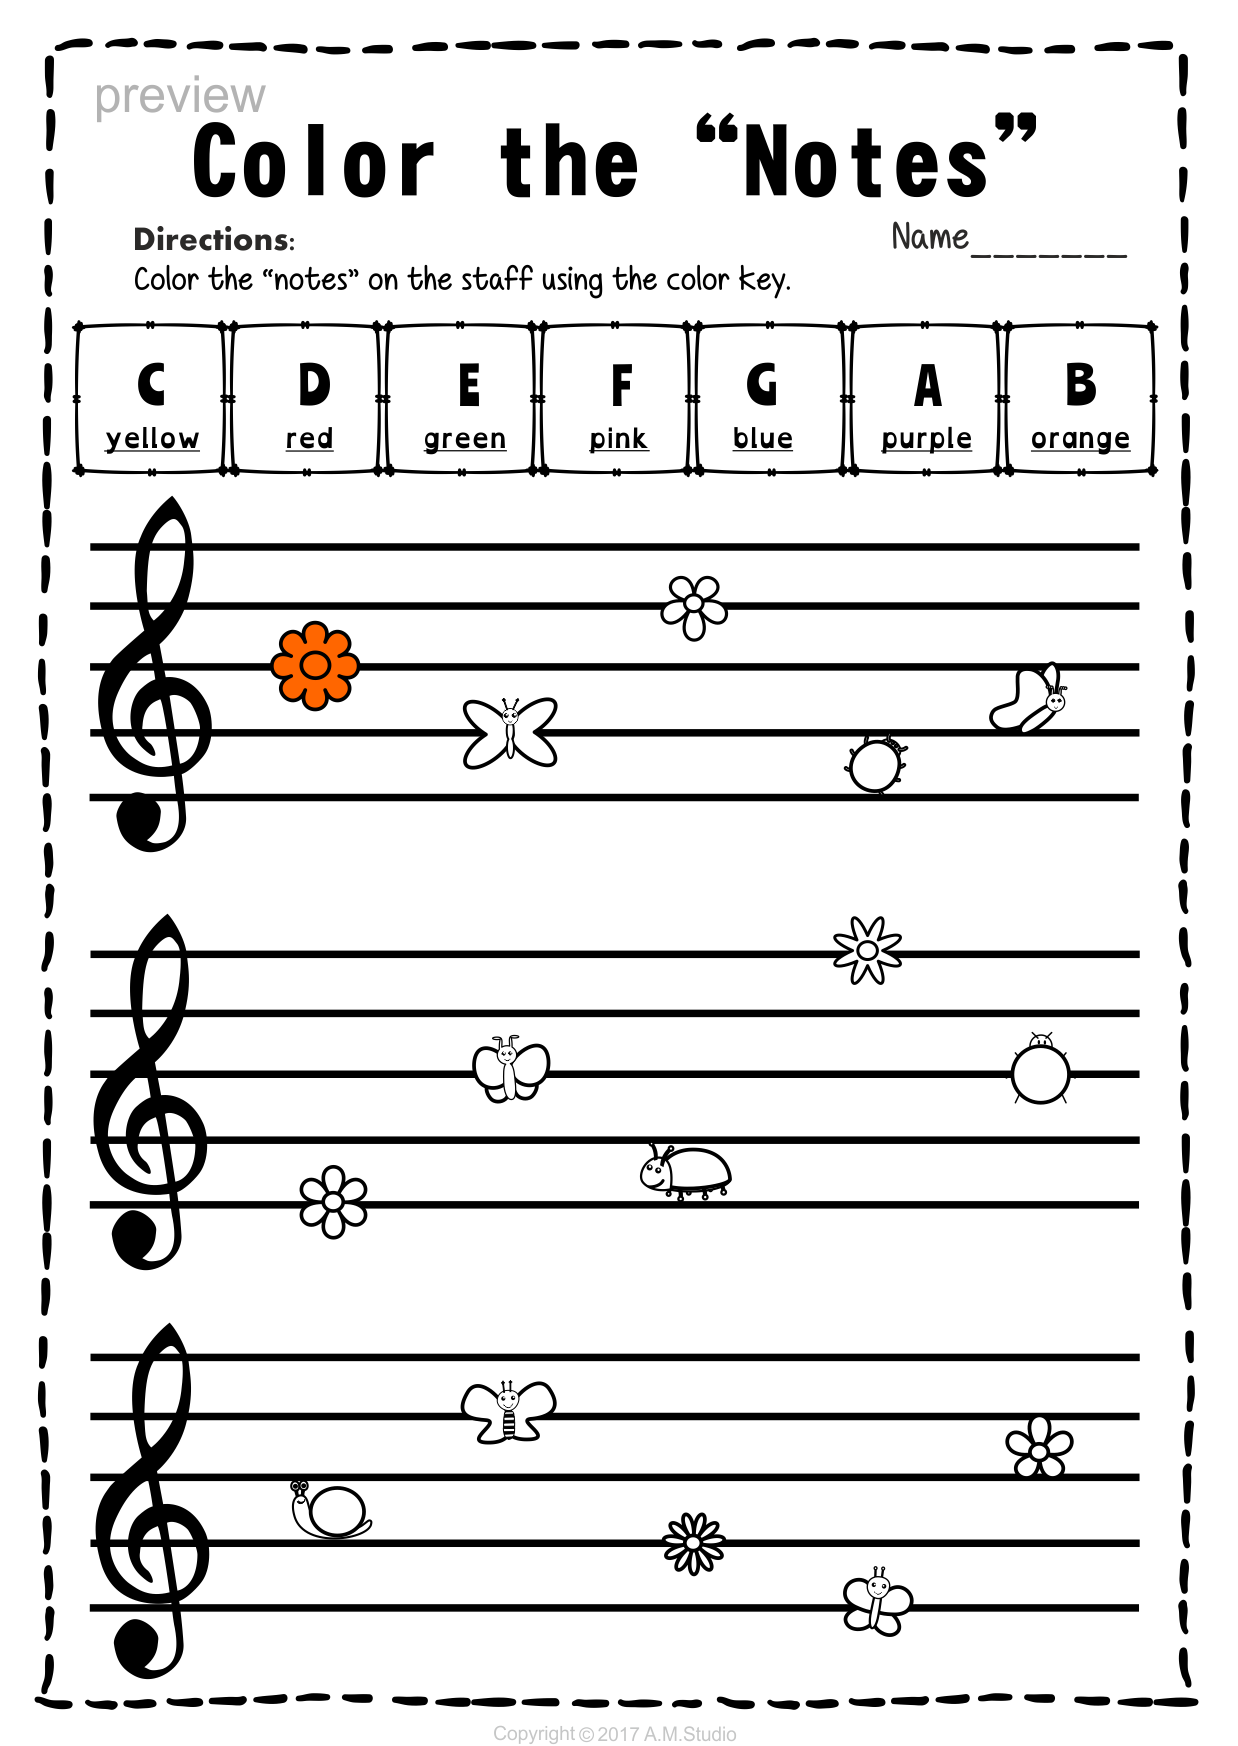 Treble Clef Note Naming Worksheets For Spring Anastasiya Multimedia Studio Music Lesson Plans Music Lessons For Kids Music Worksheets